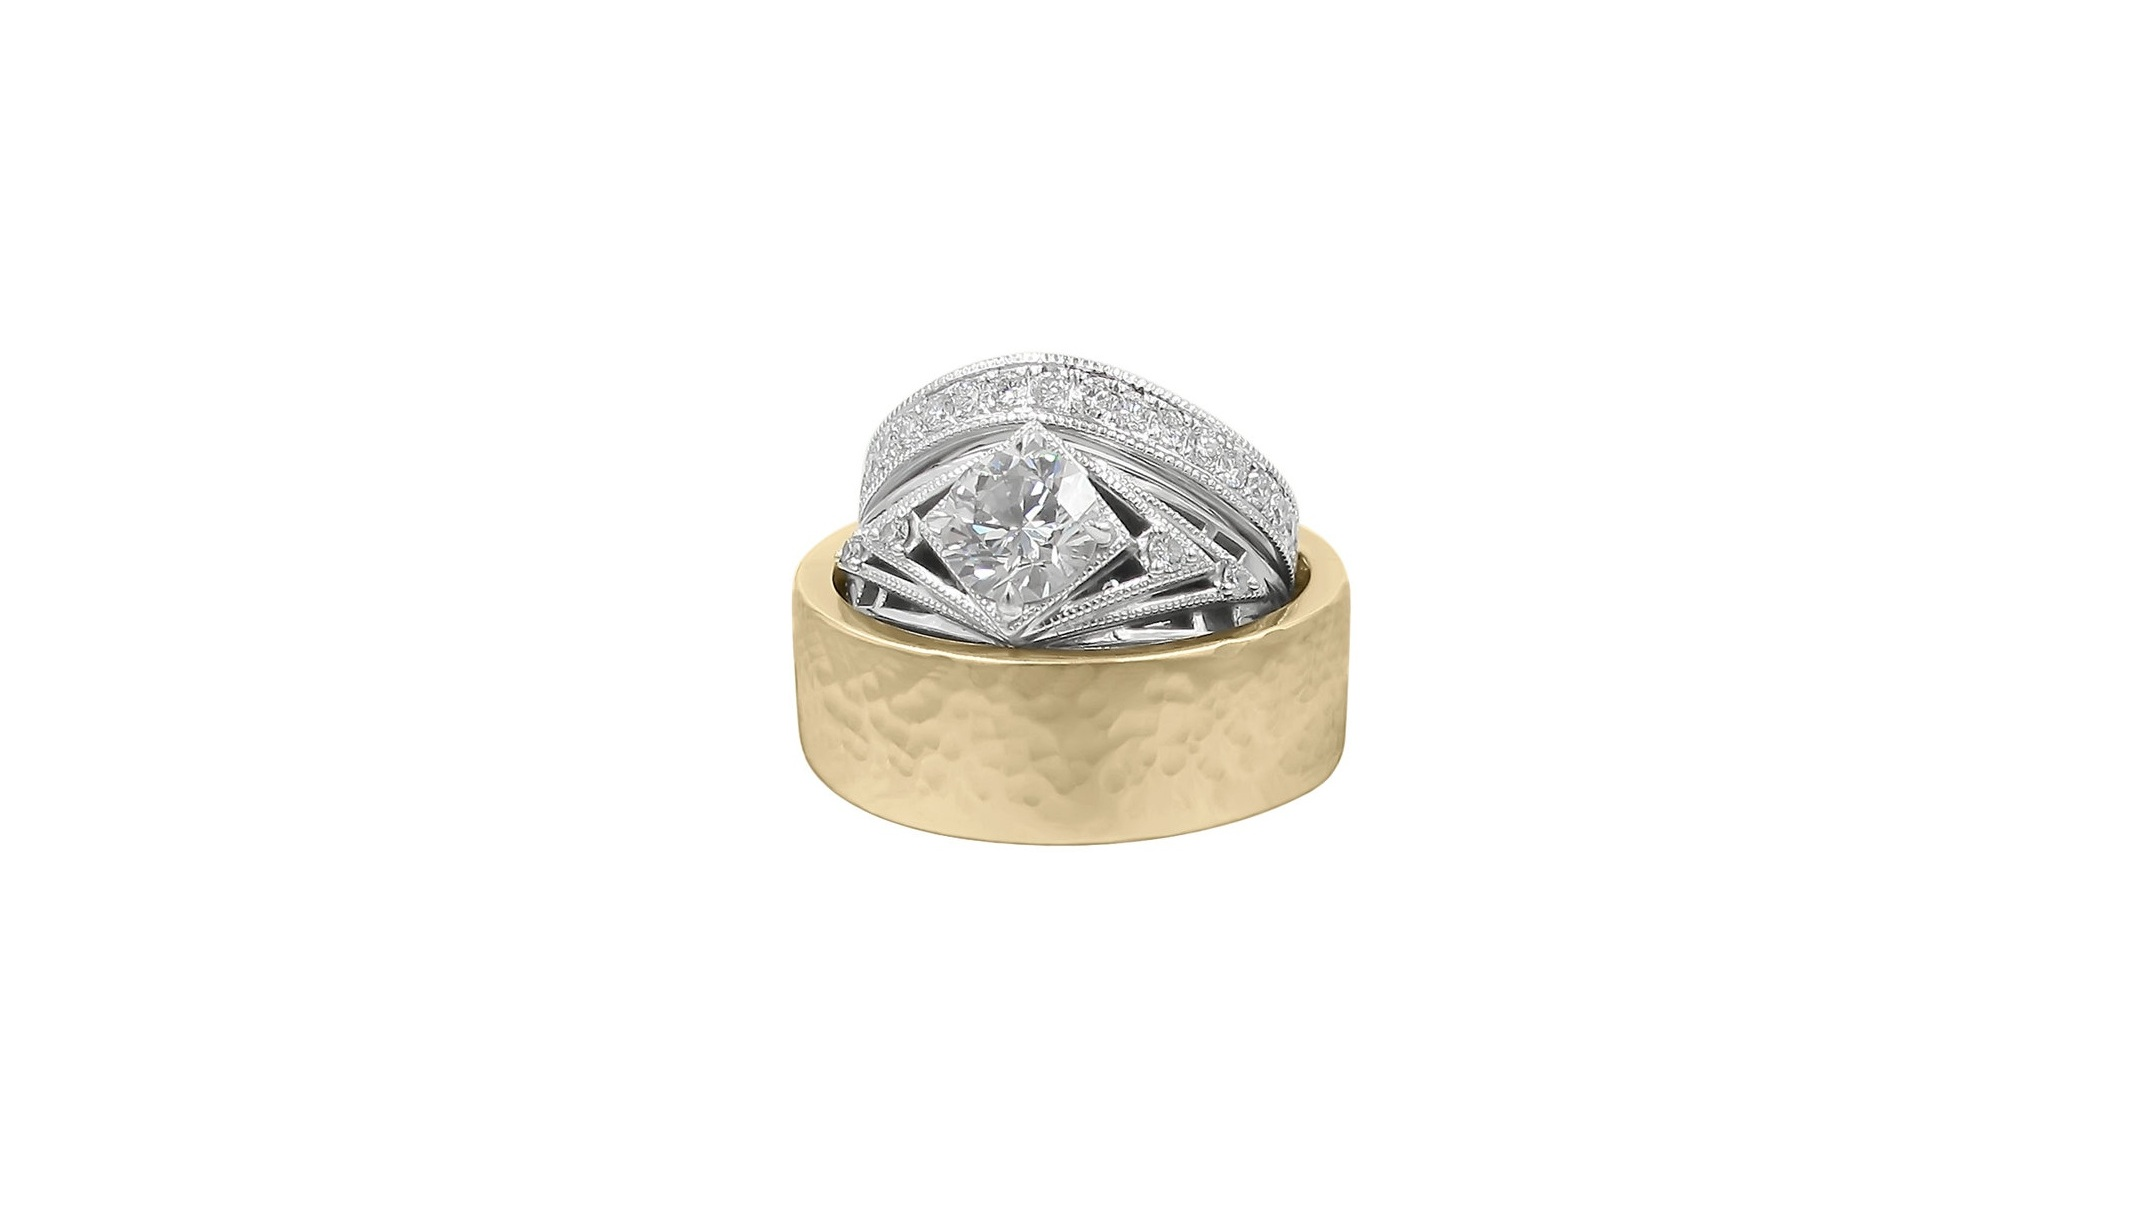 Hers- Art Deco and Comet Inspired 14k White Gold Engagement Ring with Milgrain Edge paired with Custom Fit 14k White Gold Half Eternity Band with Milgrain Edge.    His-Hand Carved 18k Yellow Gold Flat Band with Hammered Satin Finish